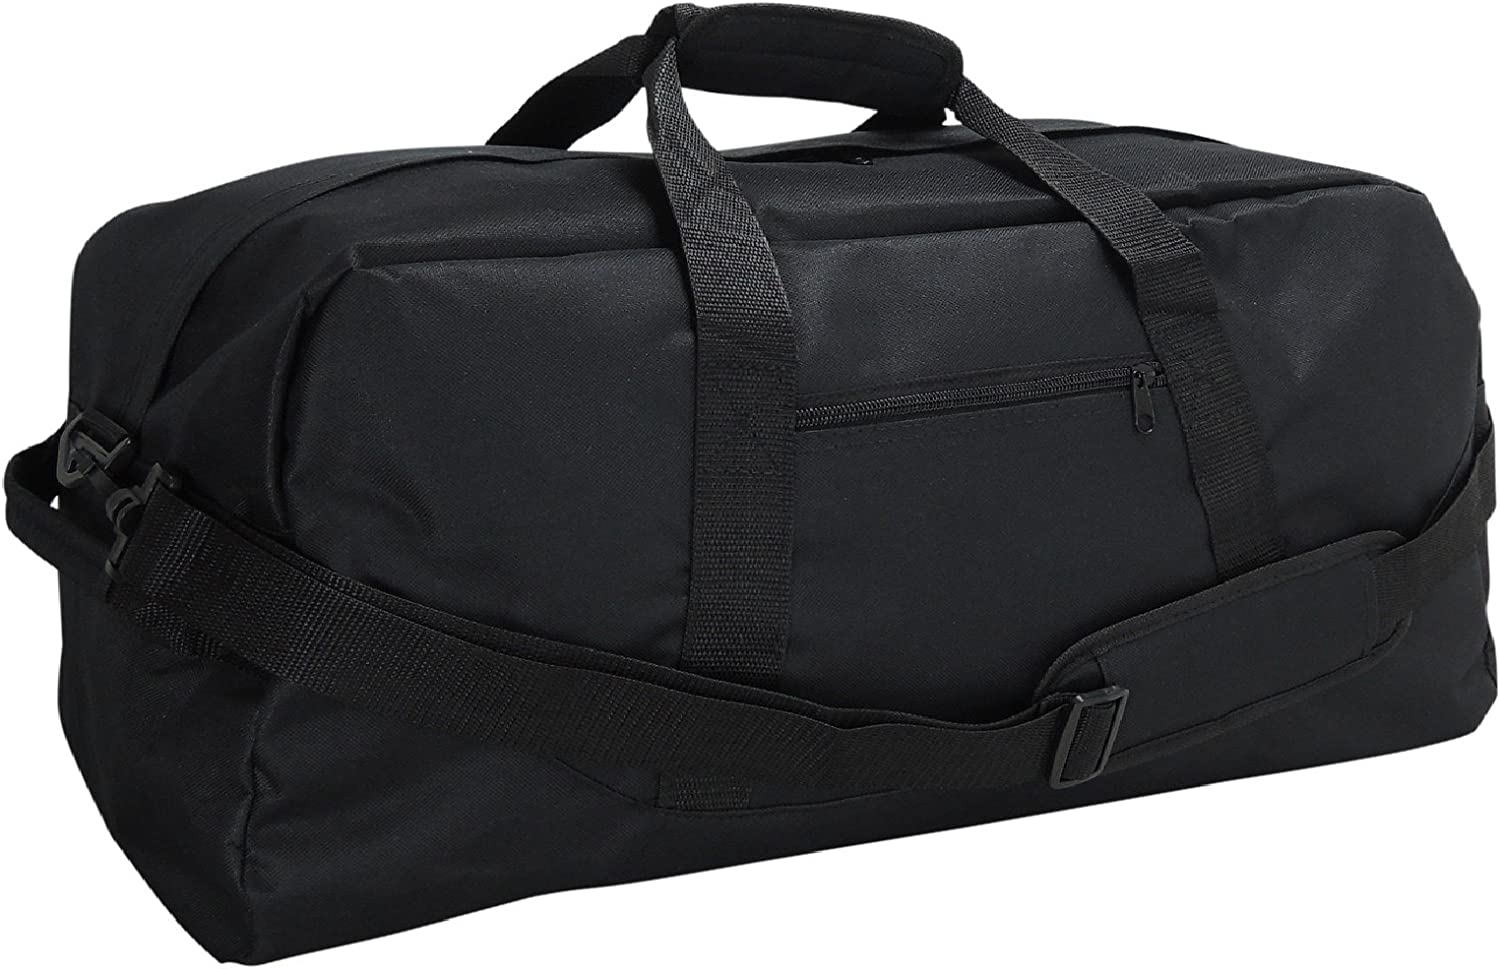 21 Large Duffle Bag with Adjustable Strap